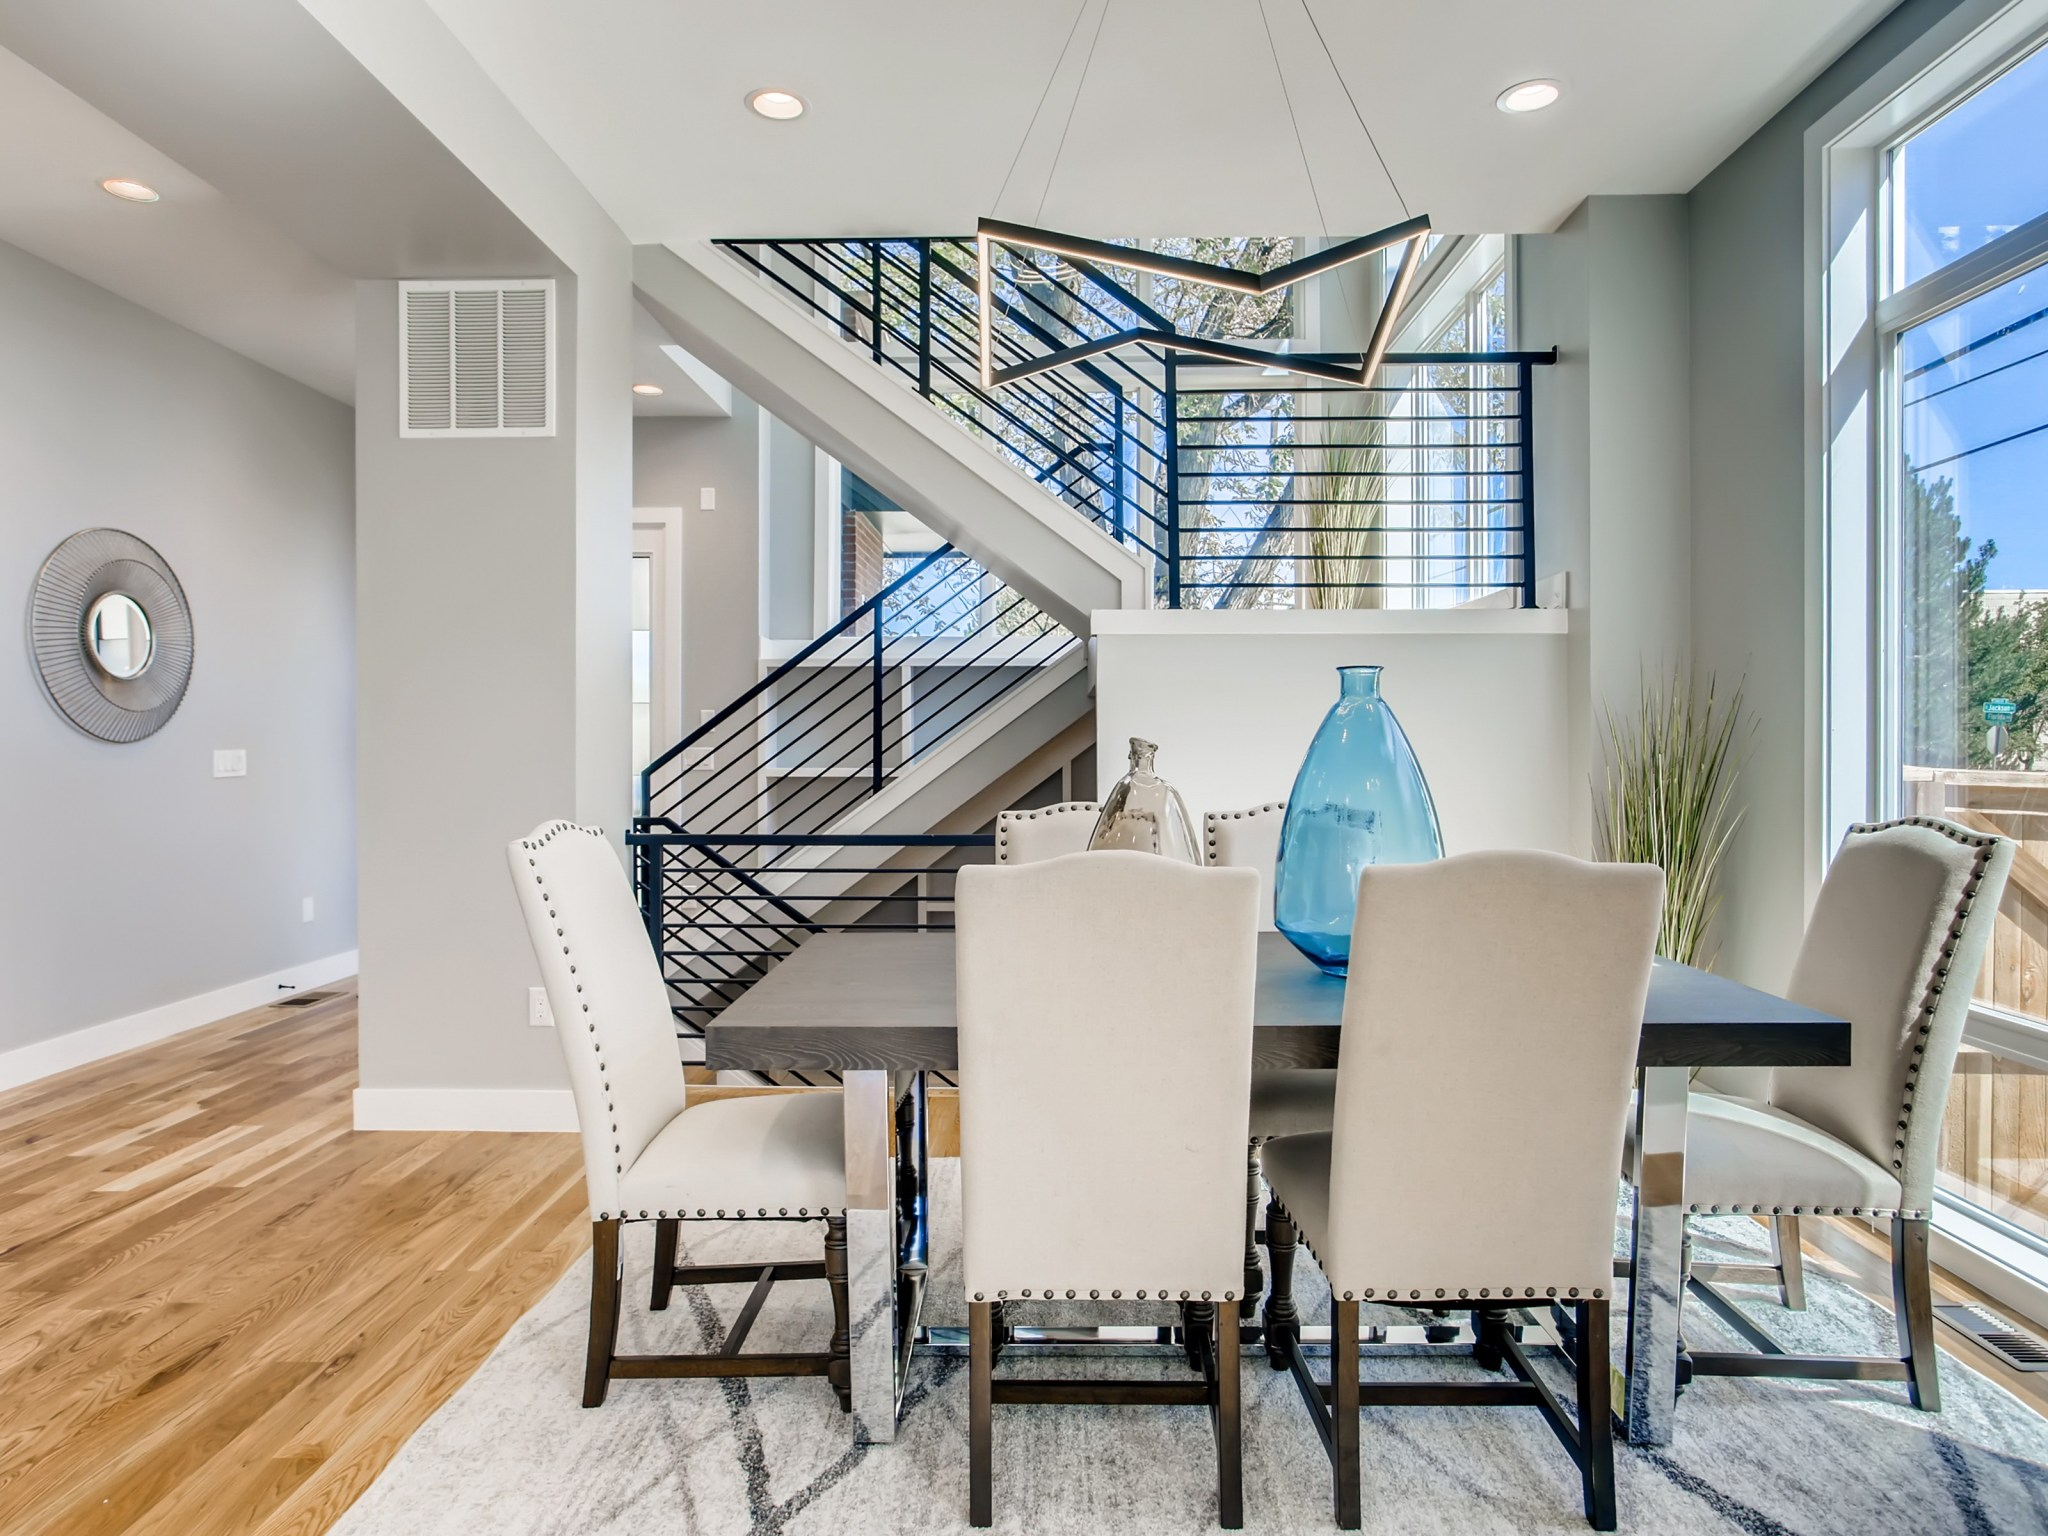 Dining Room with Stairs beyond.